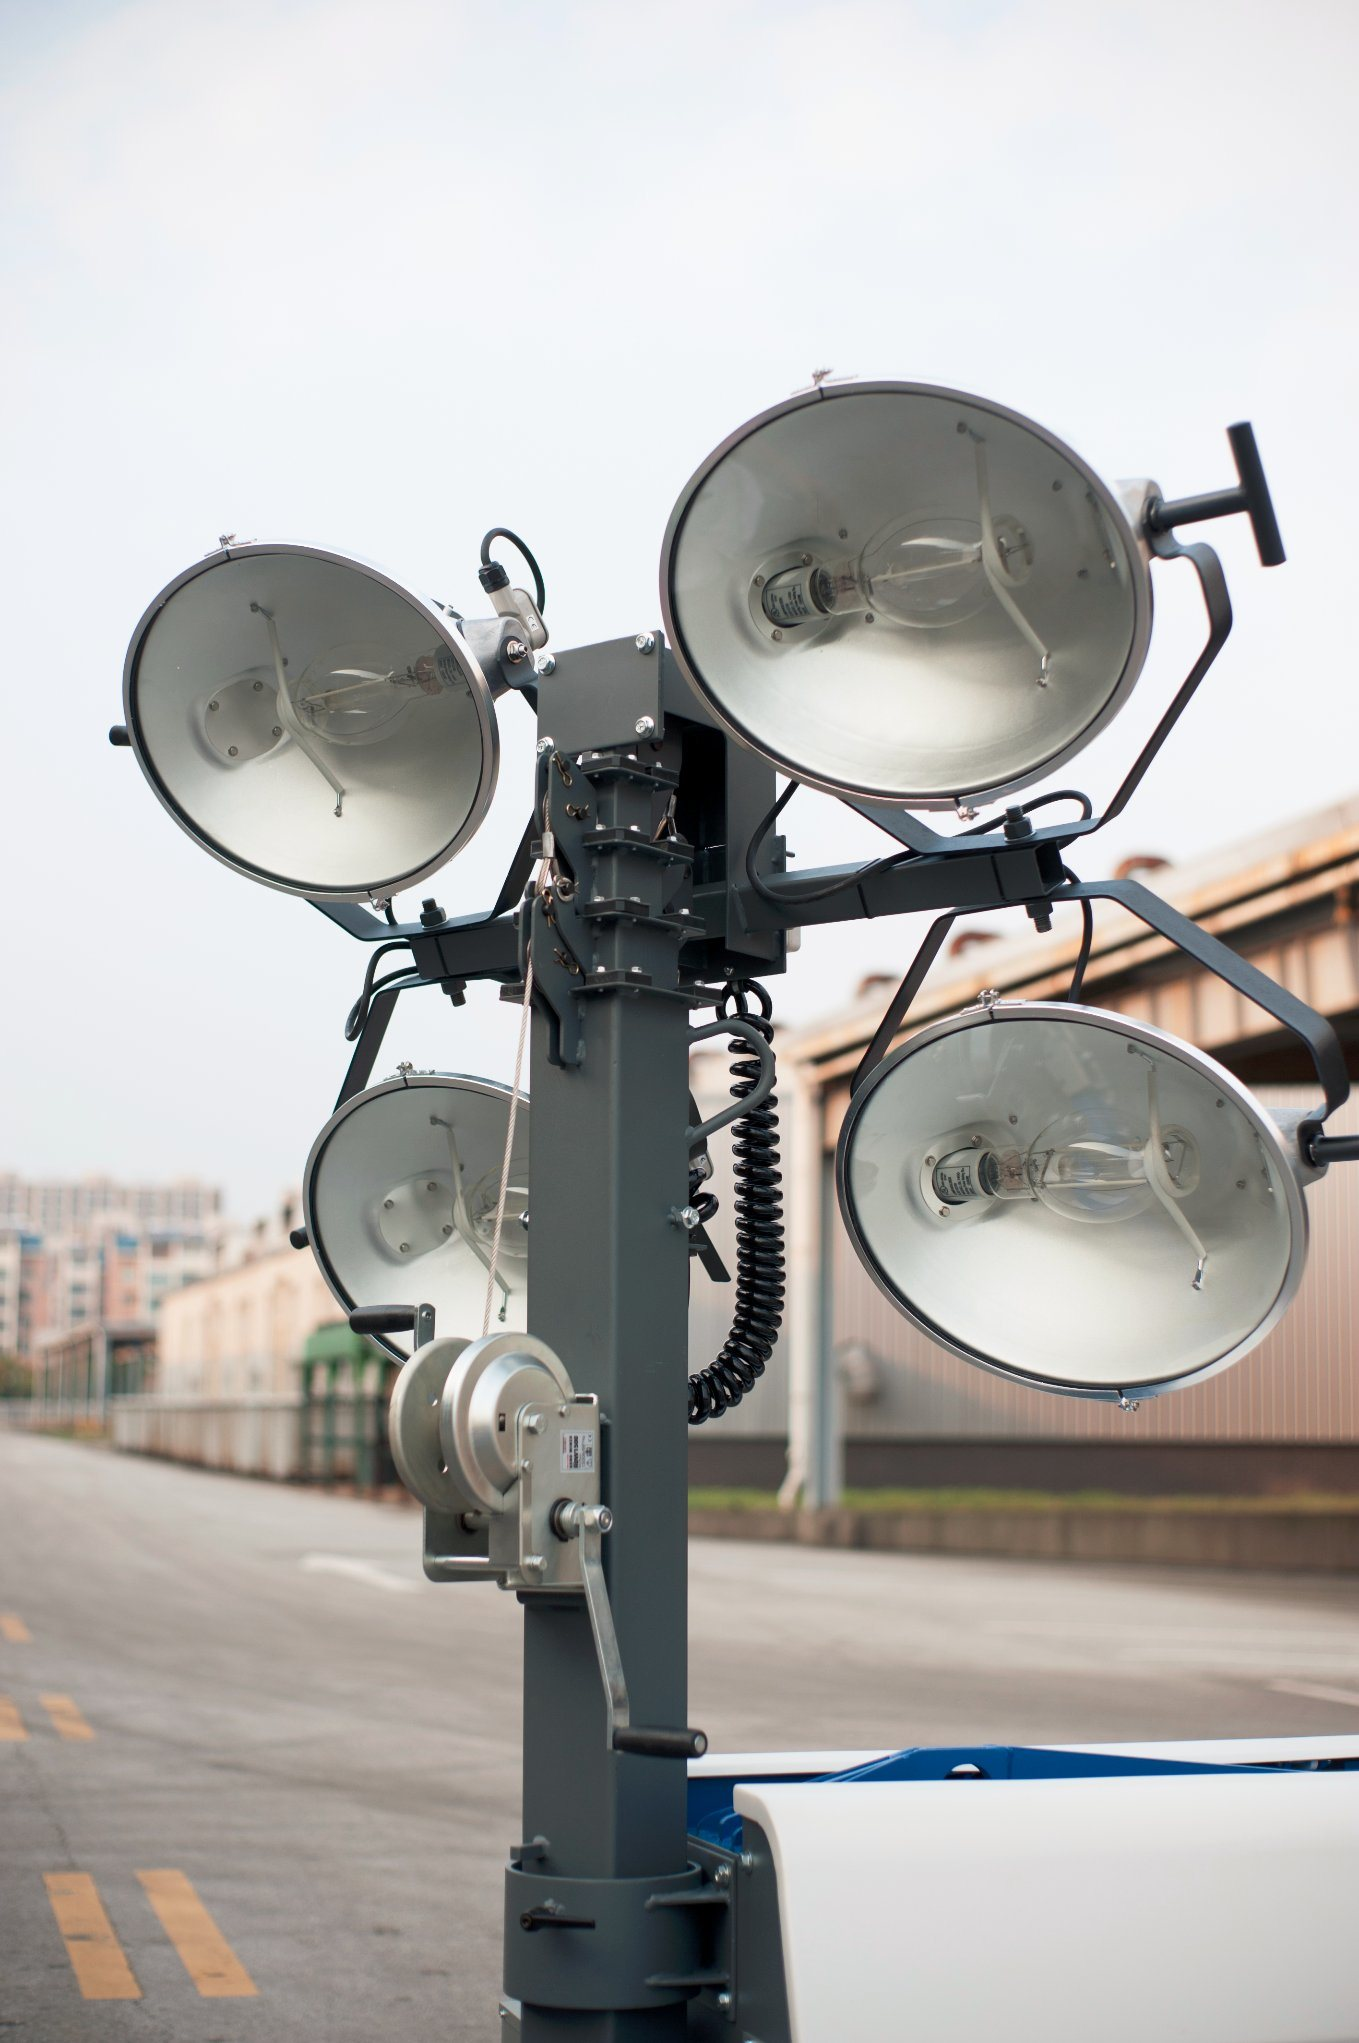 Industrial Usage Mobile Light Tower Kl06t Powered by Kipor Diese Engine